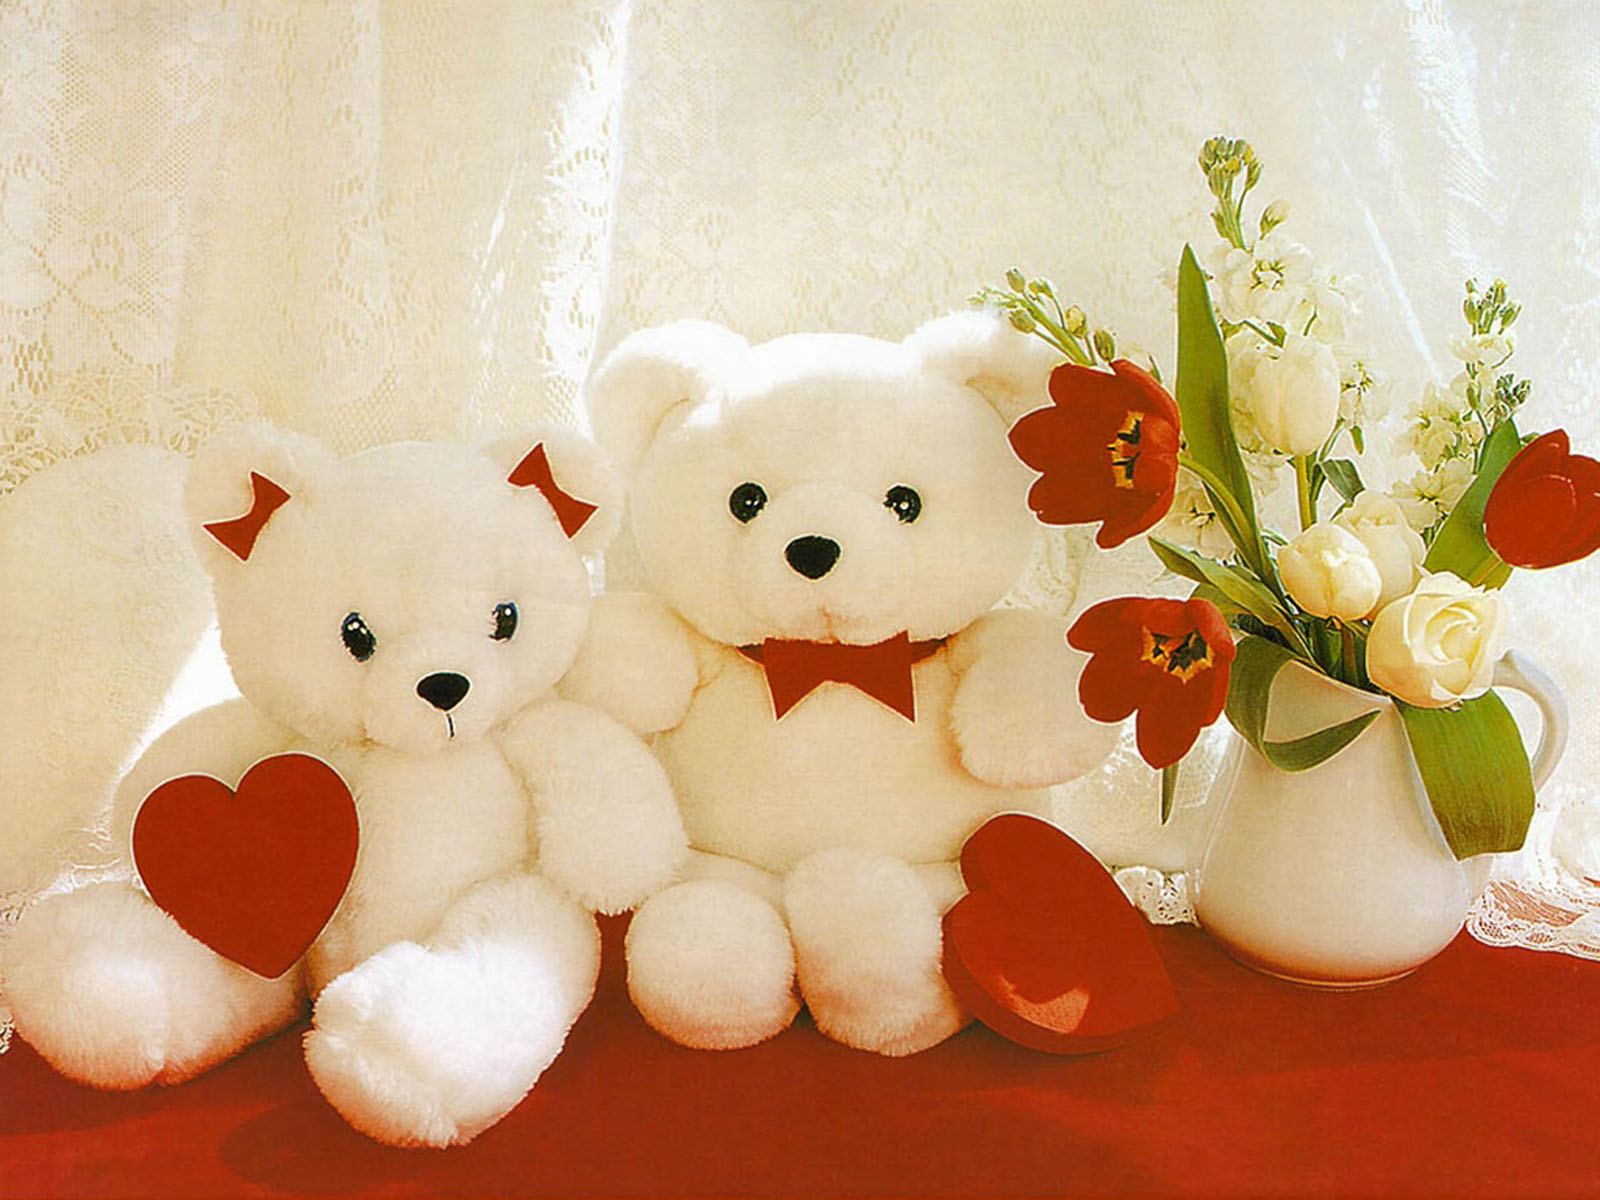 Animated love teddy bears